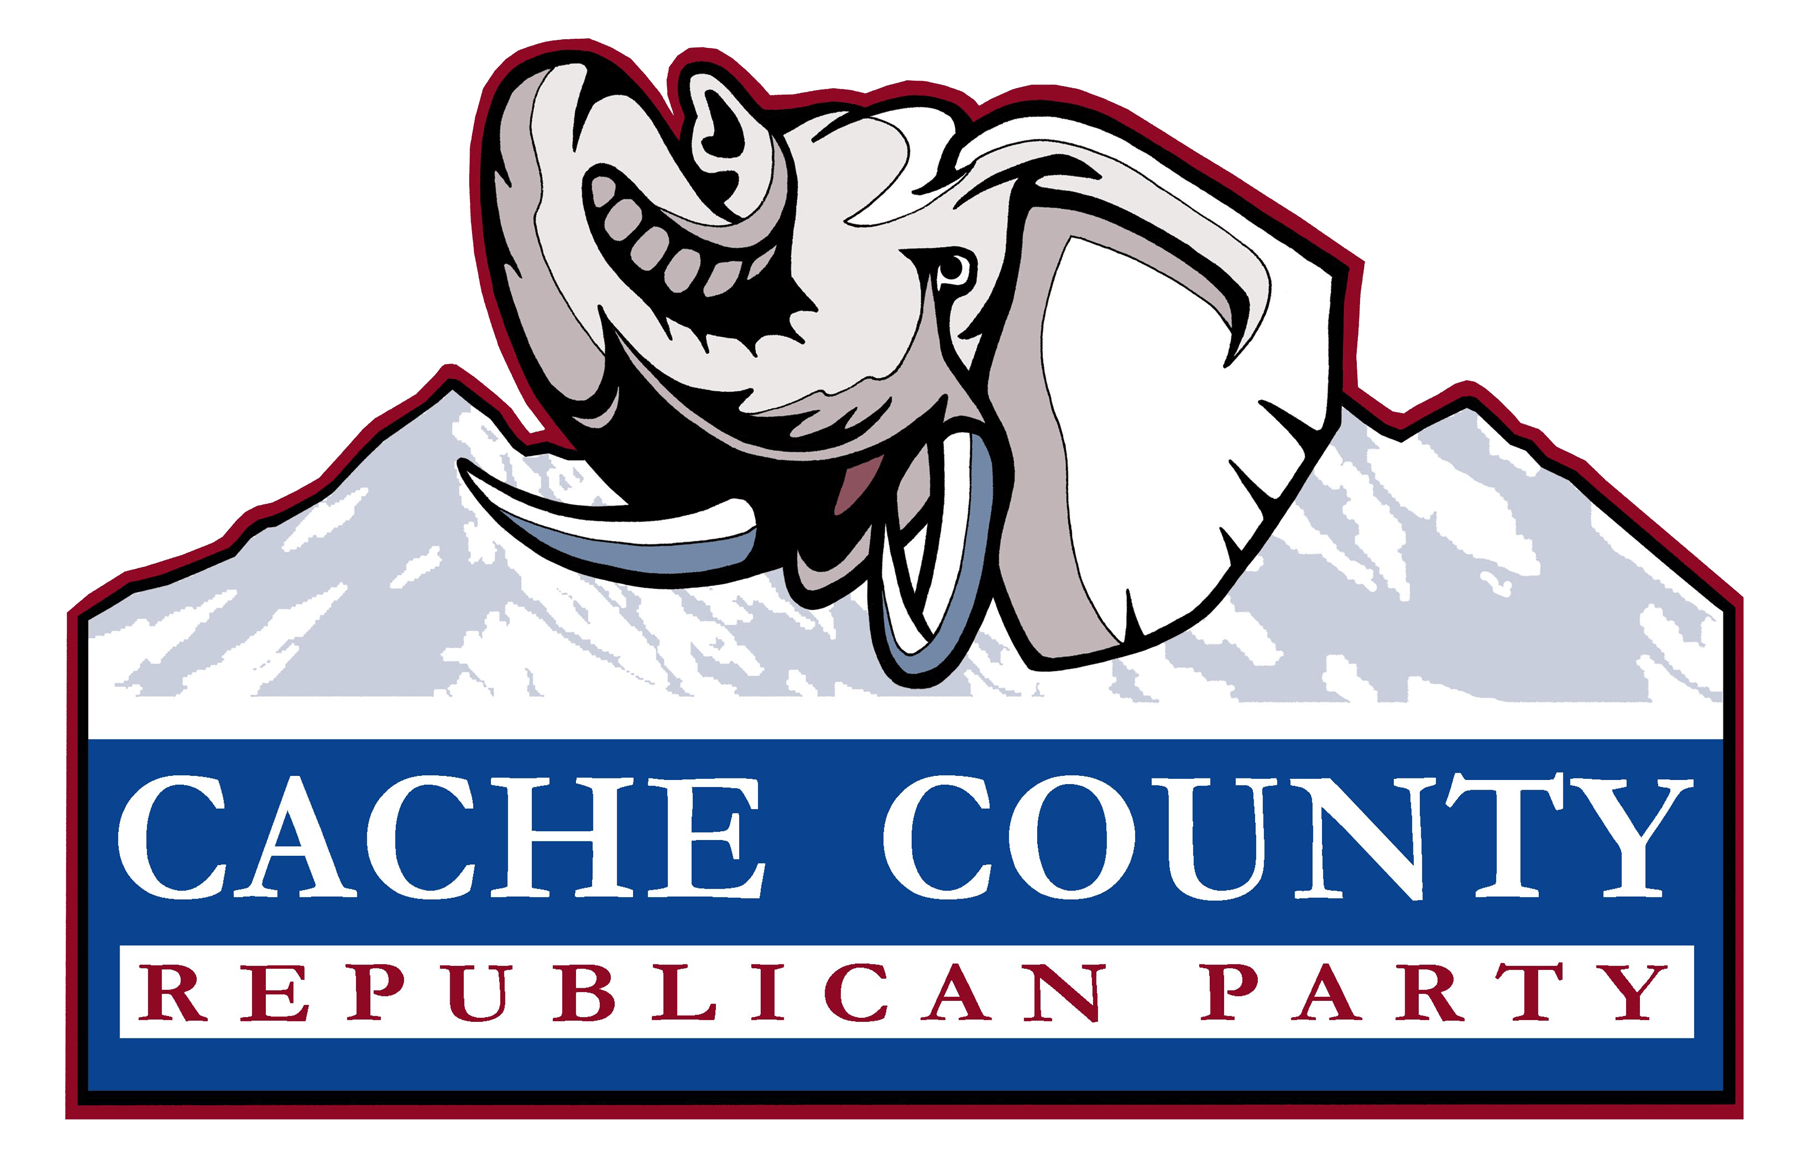 Cache County Republican Party logo